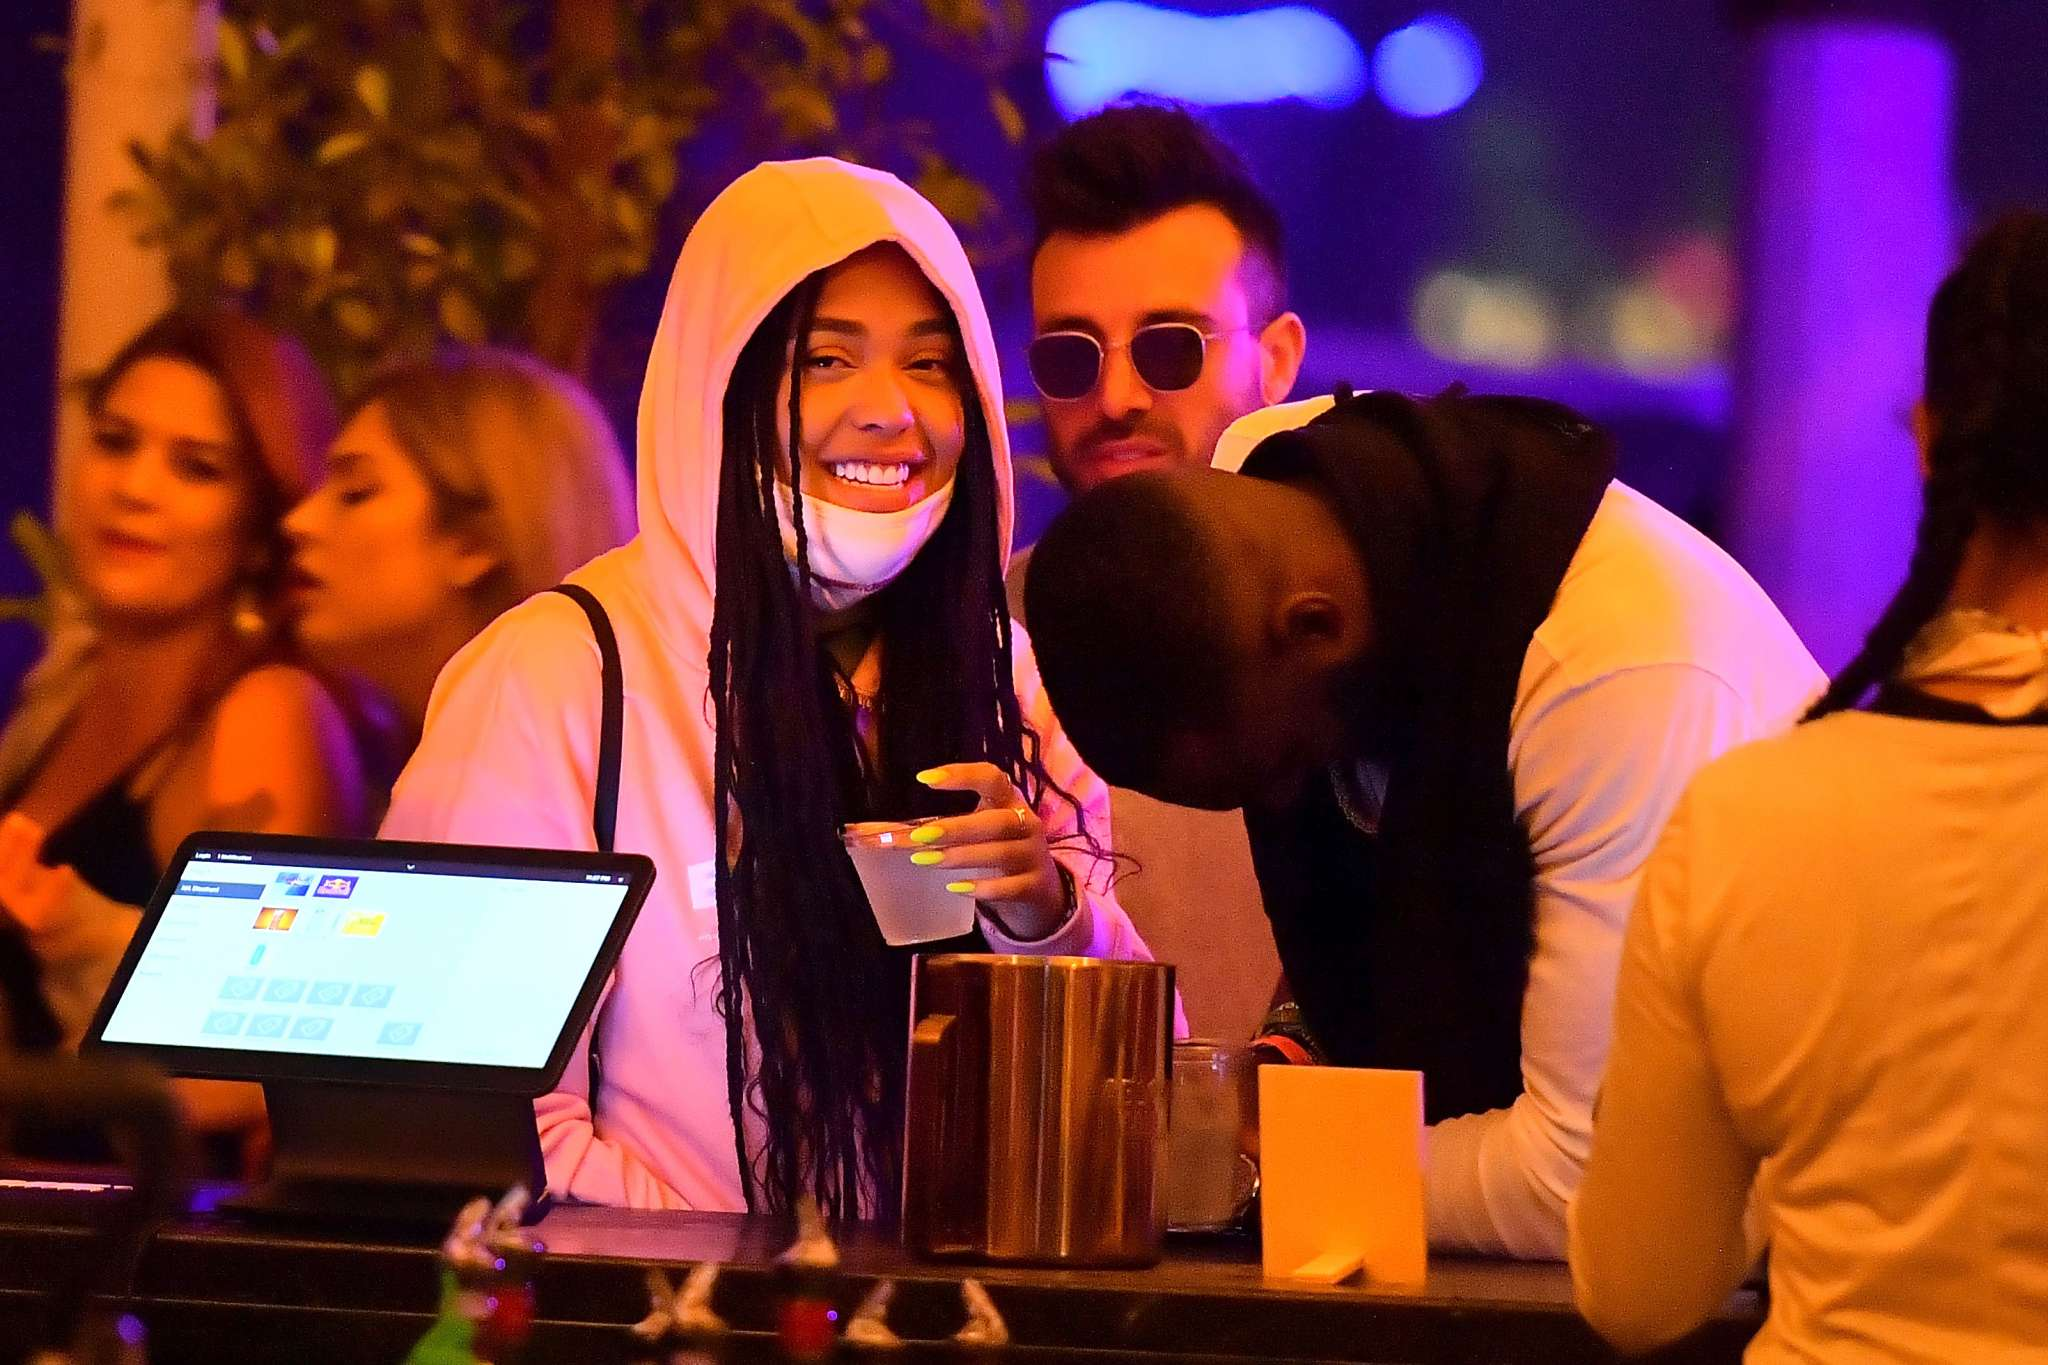 jordyn-woods-runs-into-kendall-jenner-and-hailey-baldwin-at-coachella-and-shes-reportedly-uncomfortable